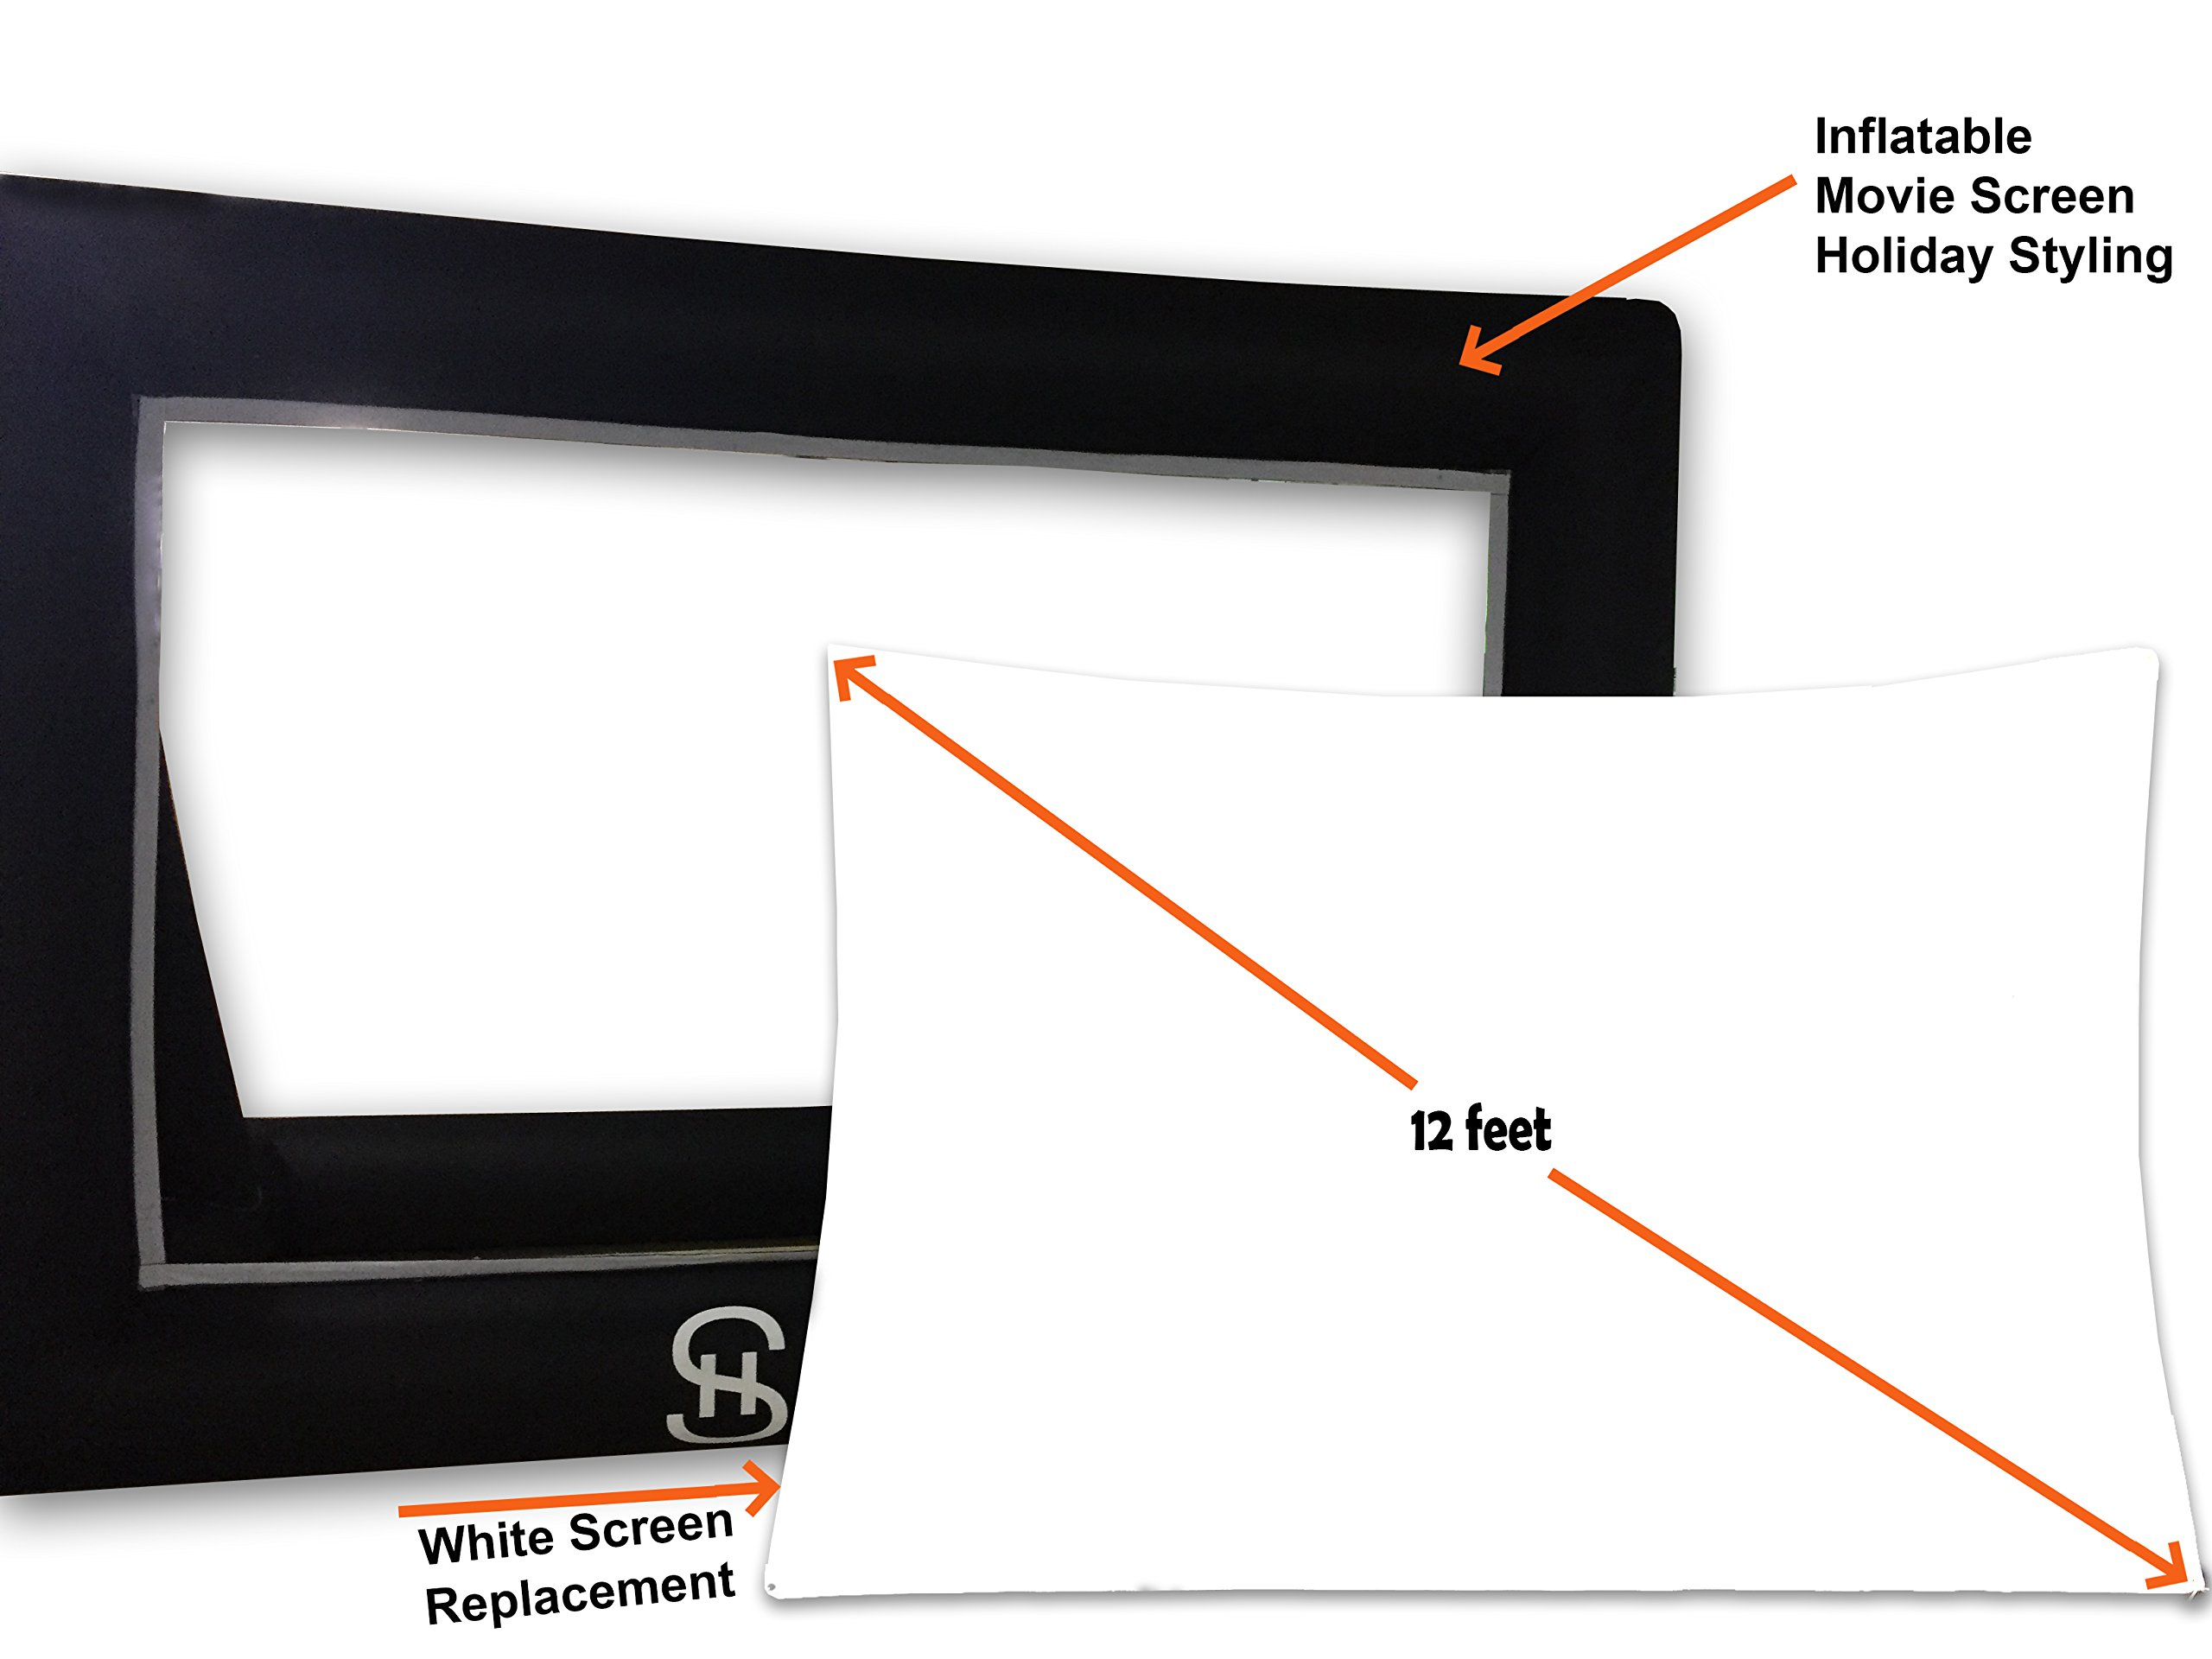 Holiday Styling Projector Screen Replacement (White Part Only 12ft) to Inflatable Outdoor Portable Movie Screen by Holiday Styling